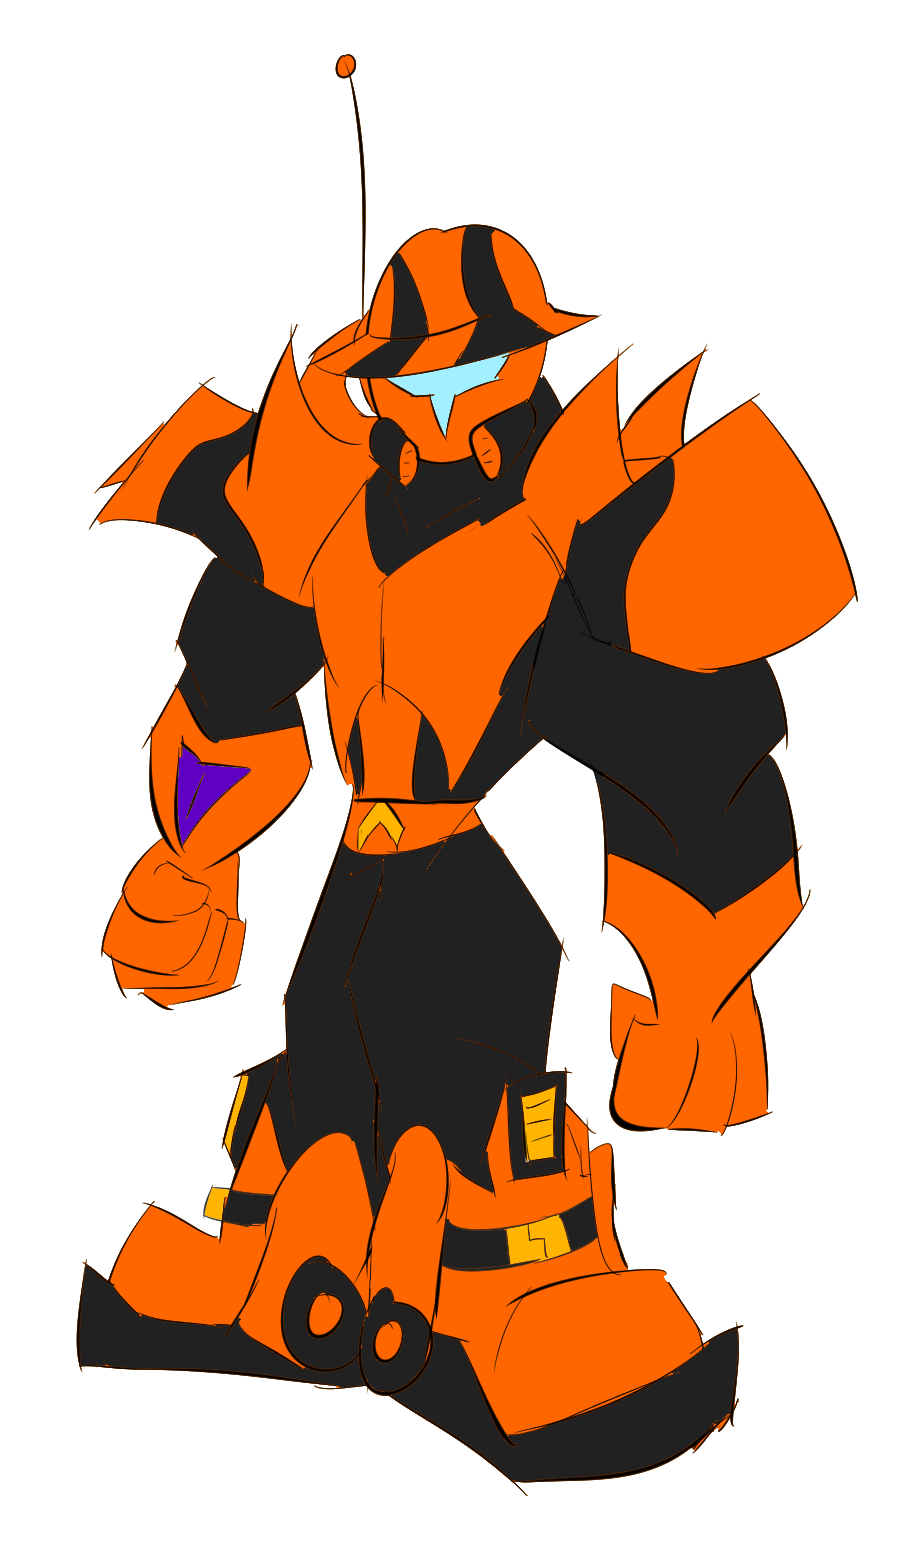 Omega Code by Thesimpleartist4